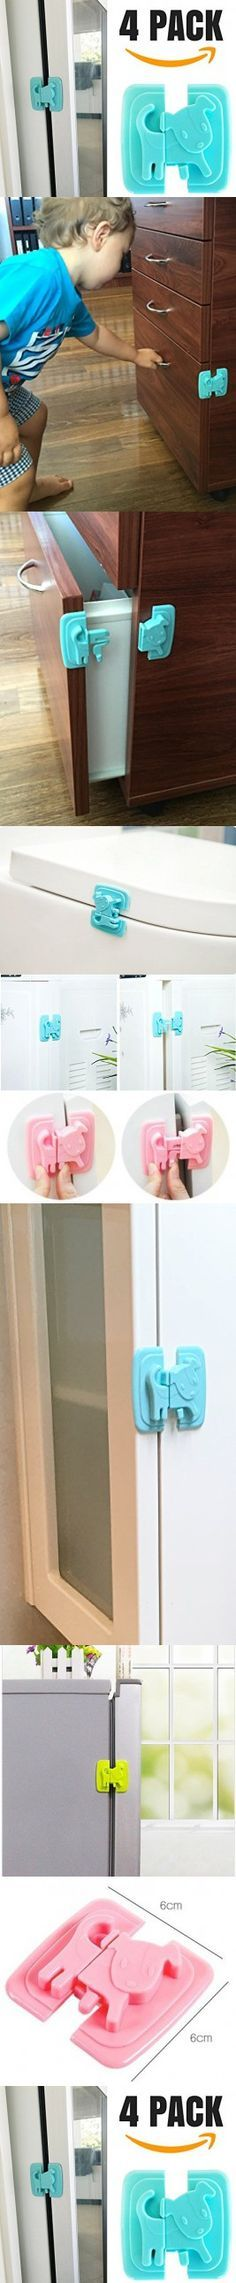 Katabird Baby Safety Cabinet Locks, 4 Count - Child Safety Latches Best for Baby Proofing Cabinets, Sliding Door, Fridge and Drawers - No Drill, Tools, Magnet Or Screws Needed